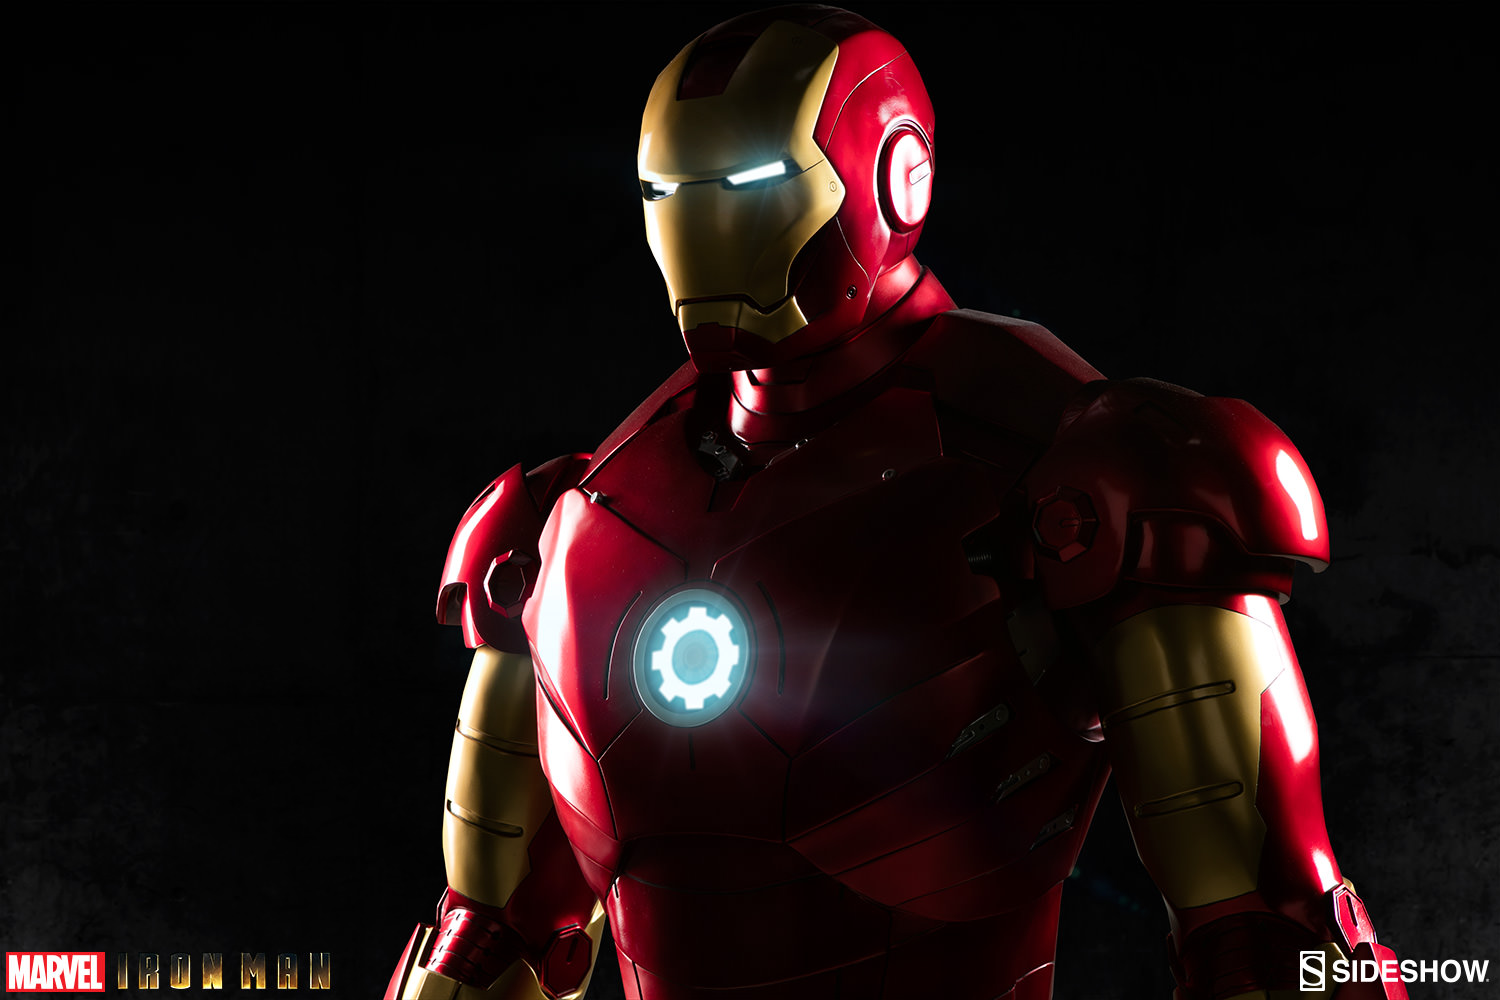 Marvel iron man mark iii life size figure by sideshow for Maison d iron man